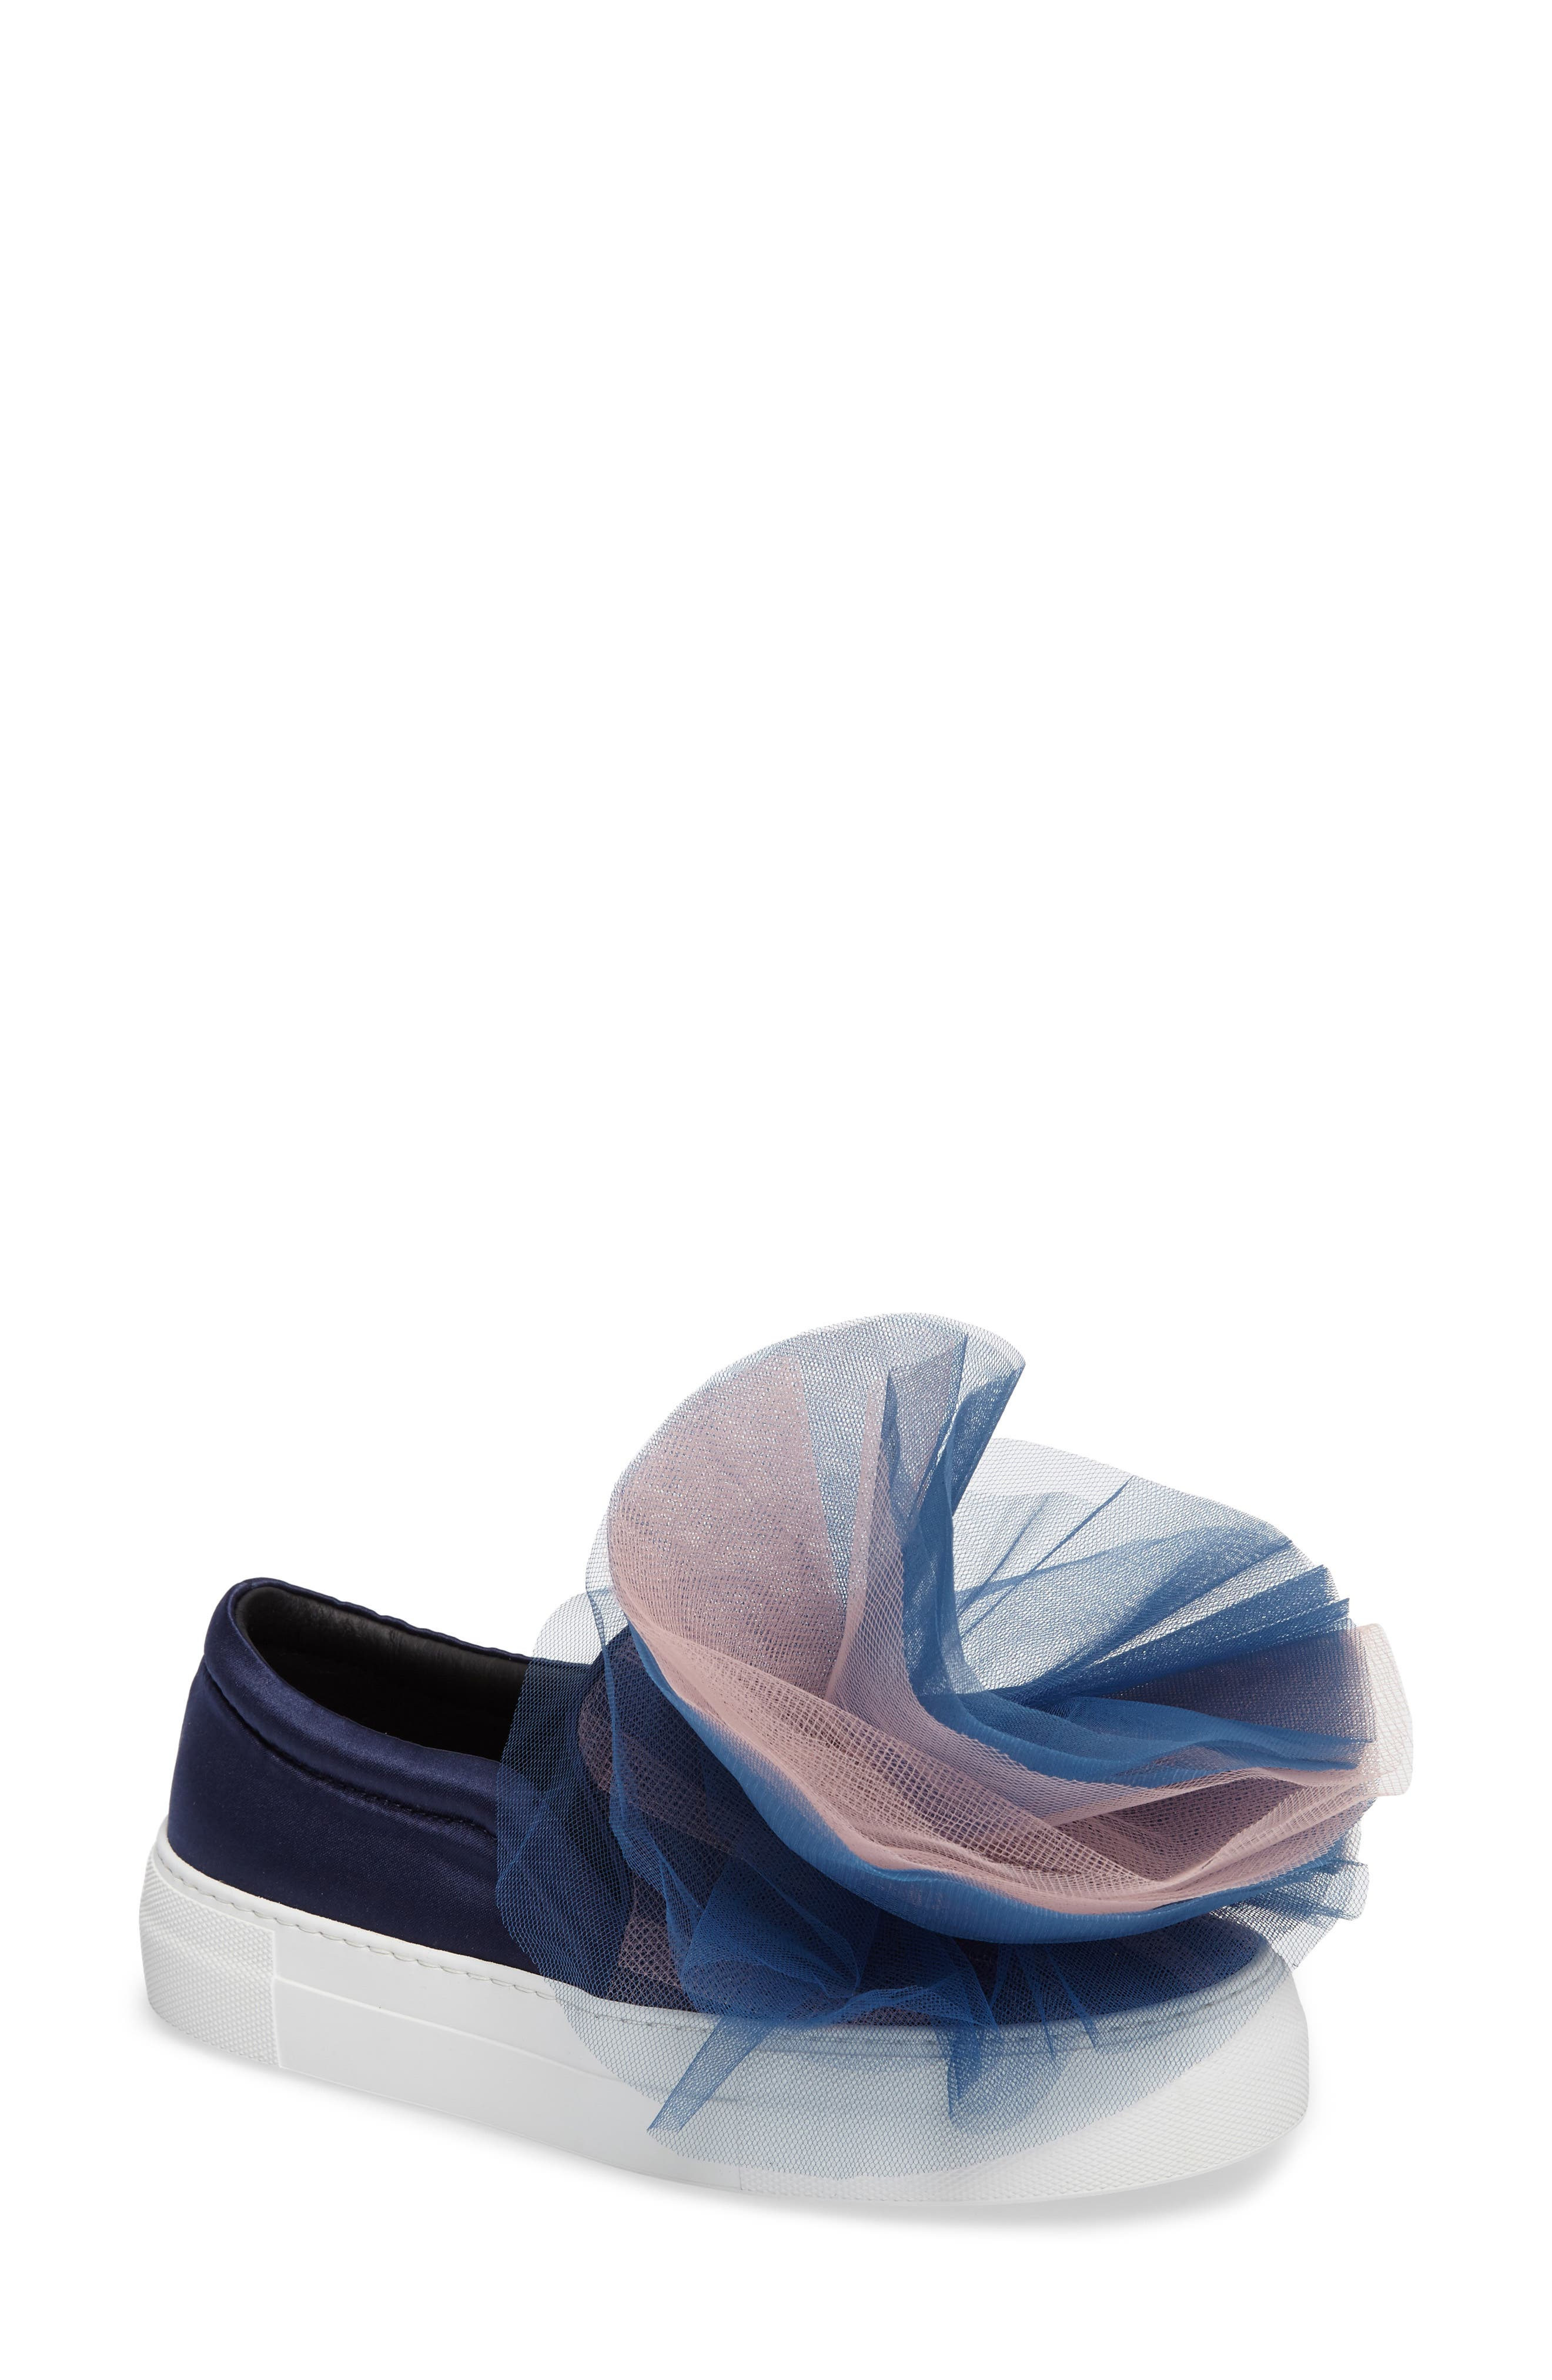 Tulle Slip-On Sneaker,                         Main,                         color, Navy Pink Combo